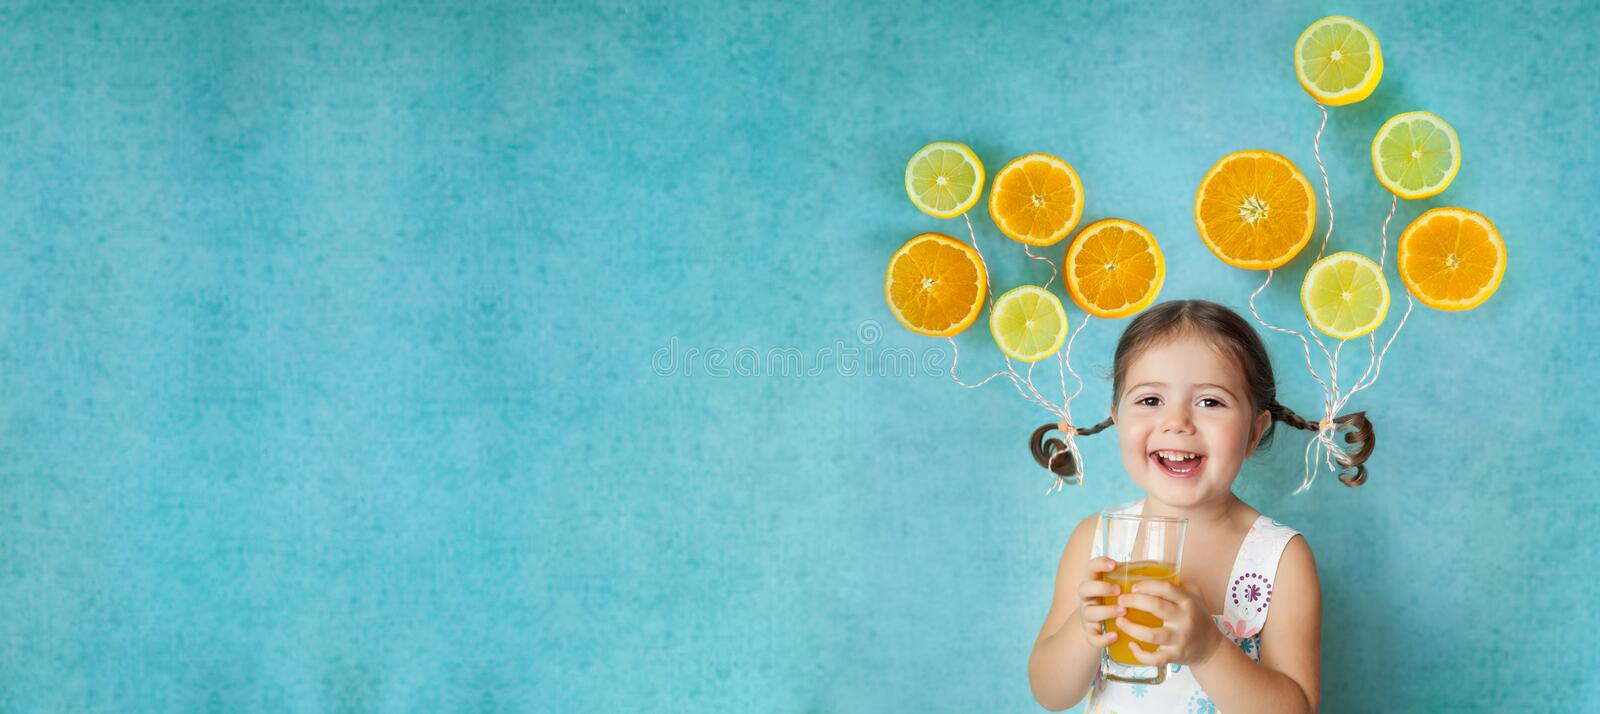 Smiling girl drinks fresh orange juice. Laughing girl keeps glass of fresh citrus juice with bright balloons orange and lemon slices on her pigtails. Healthy stock photo